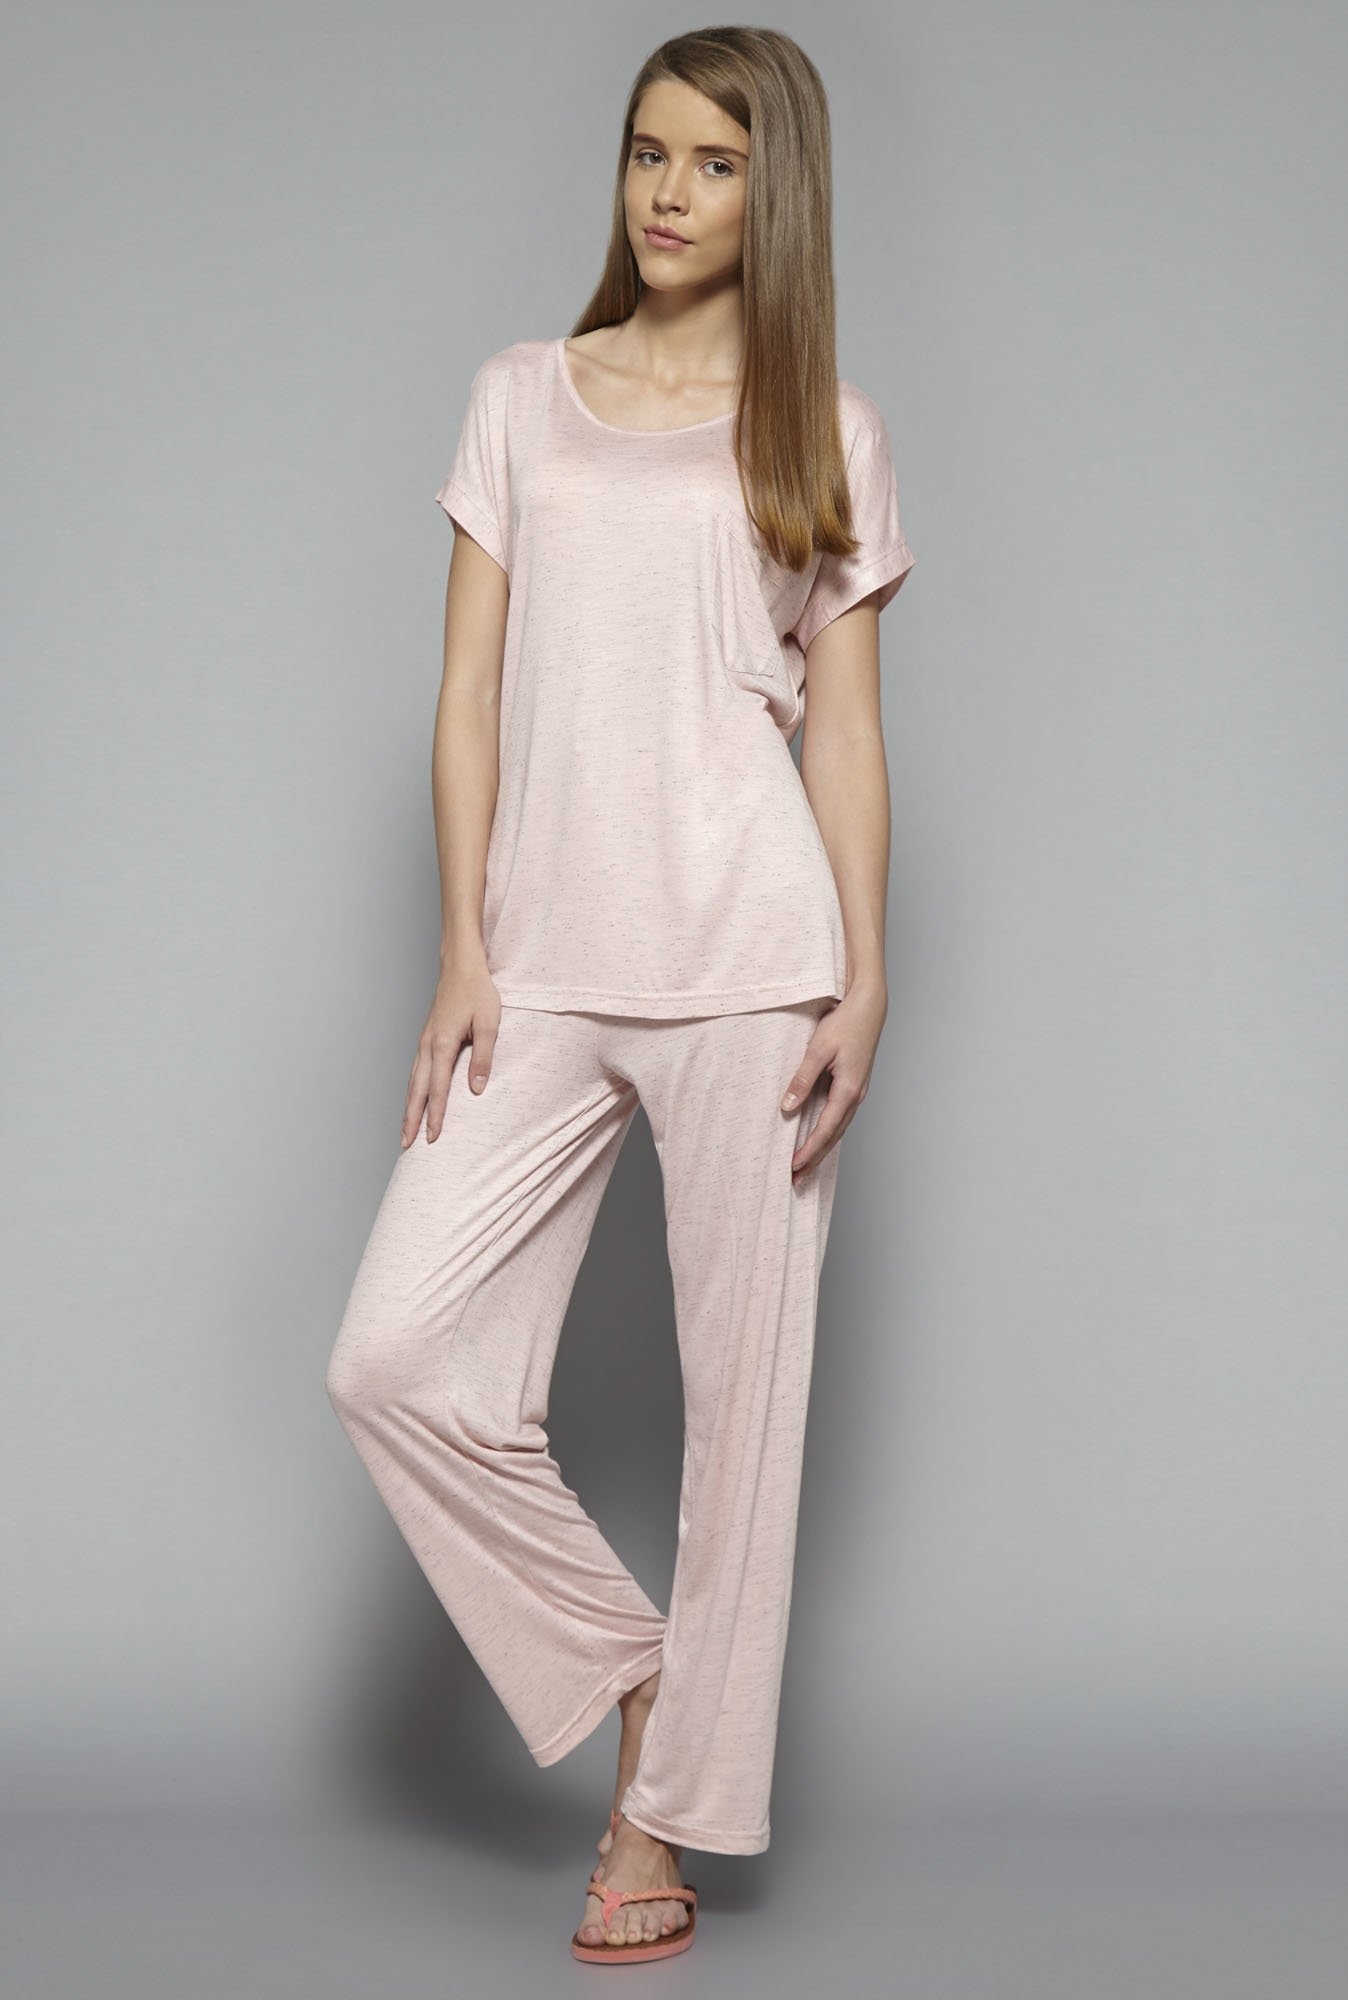 Intima by Westside Pink Textured Pyjama Set